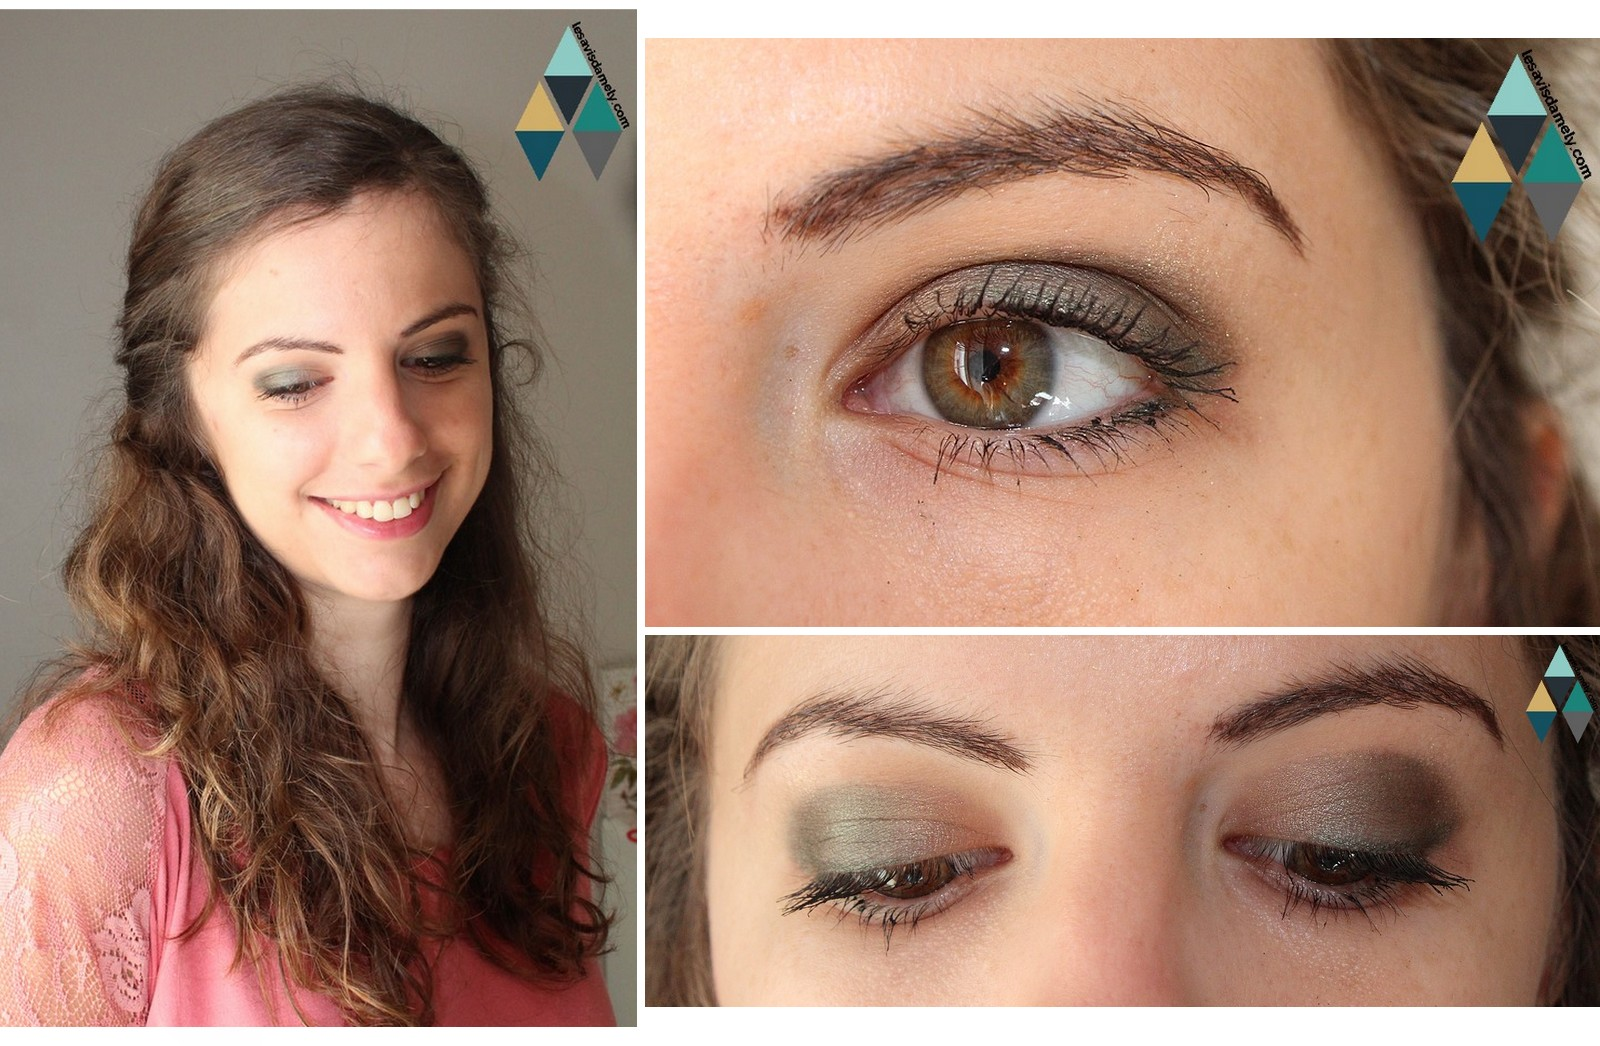 comment porter la couleur verte en maquillage ?